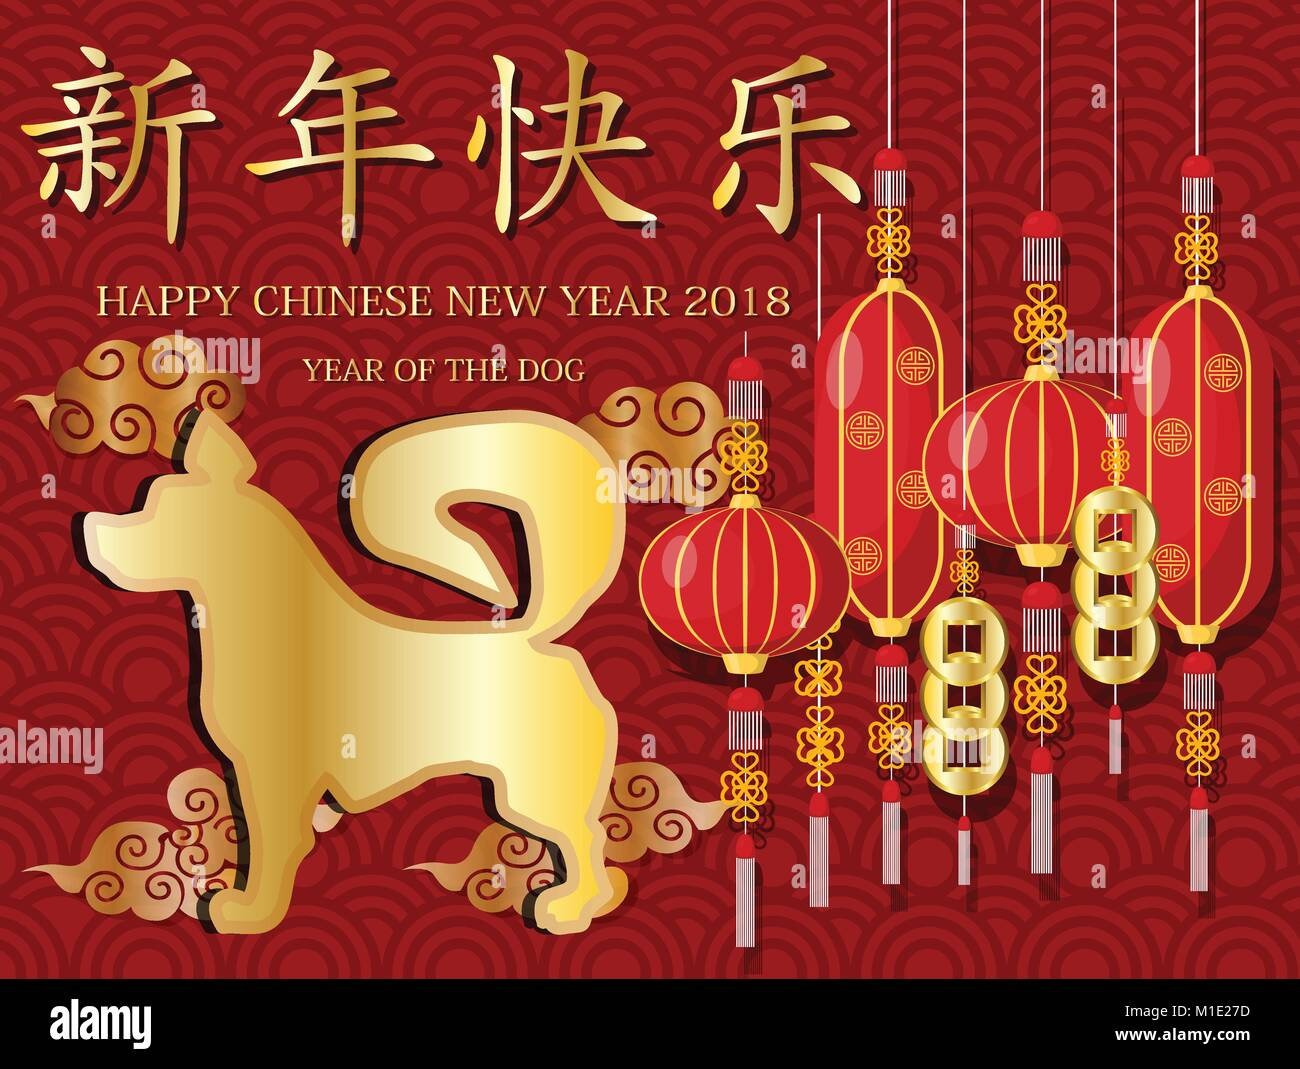 2018 happy chinese new year design year of the dog happy dog year in chinese words on red chinese pattern backgroundchinese translation happy new